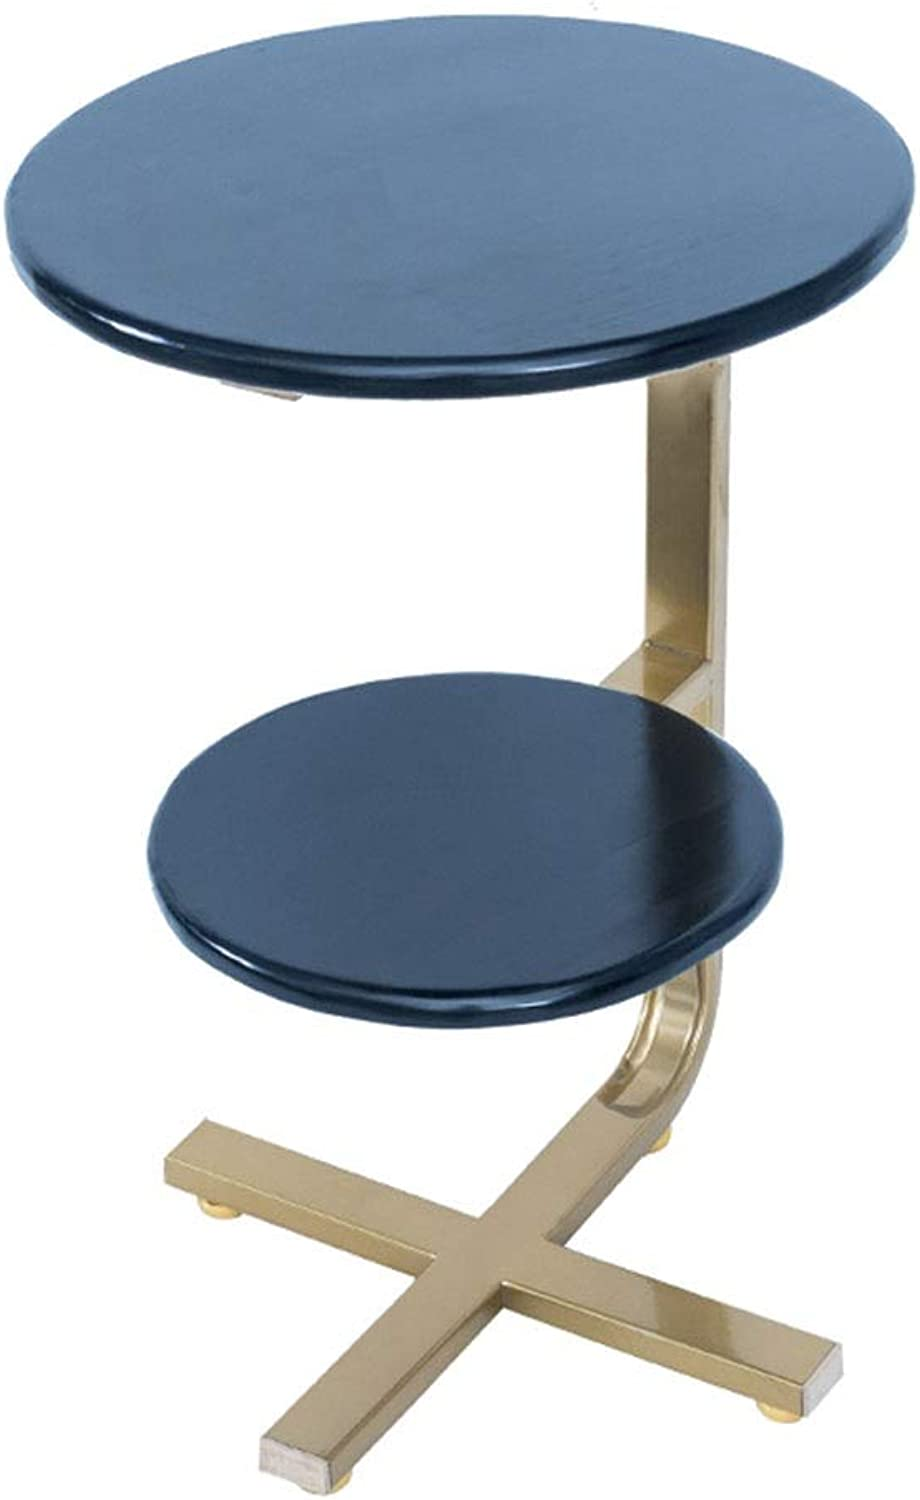 Coffee Table Side Table, Iron Bracket Pine Countertop Double Partition Portable Mobile Simple Small Coffee Table Corner Table (color   bluee)